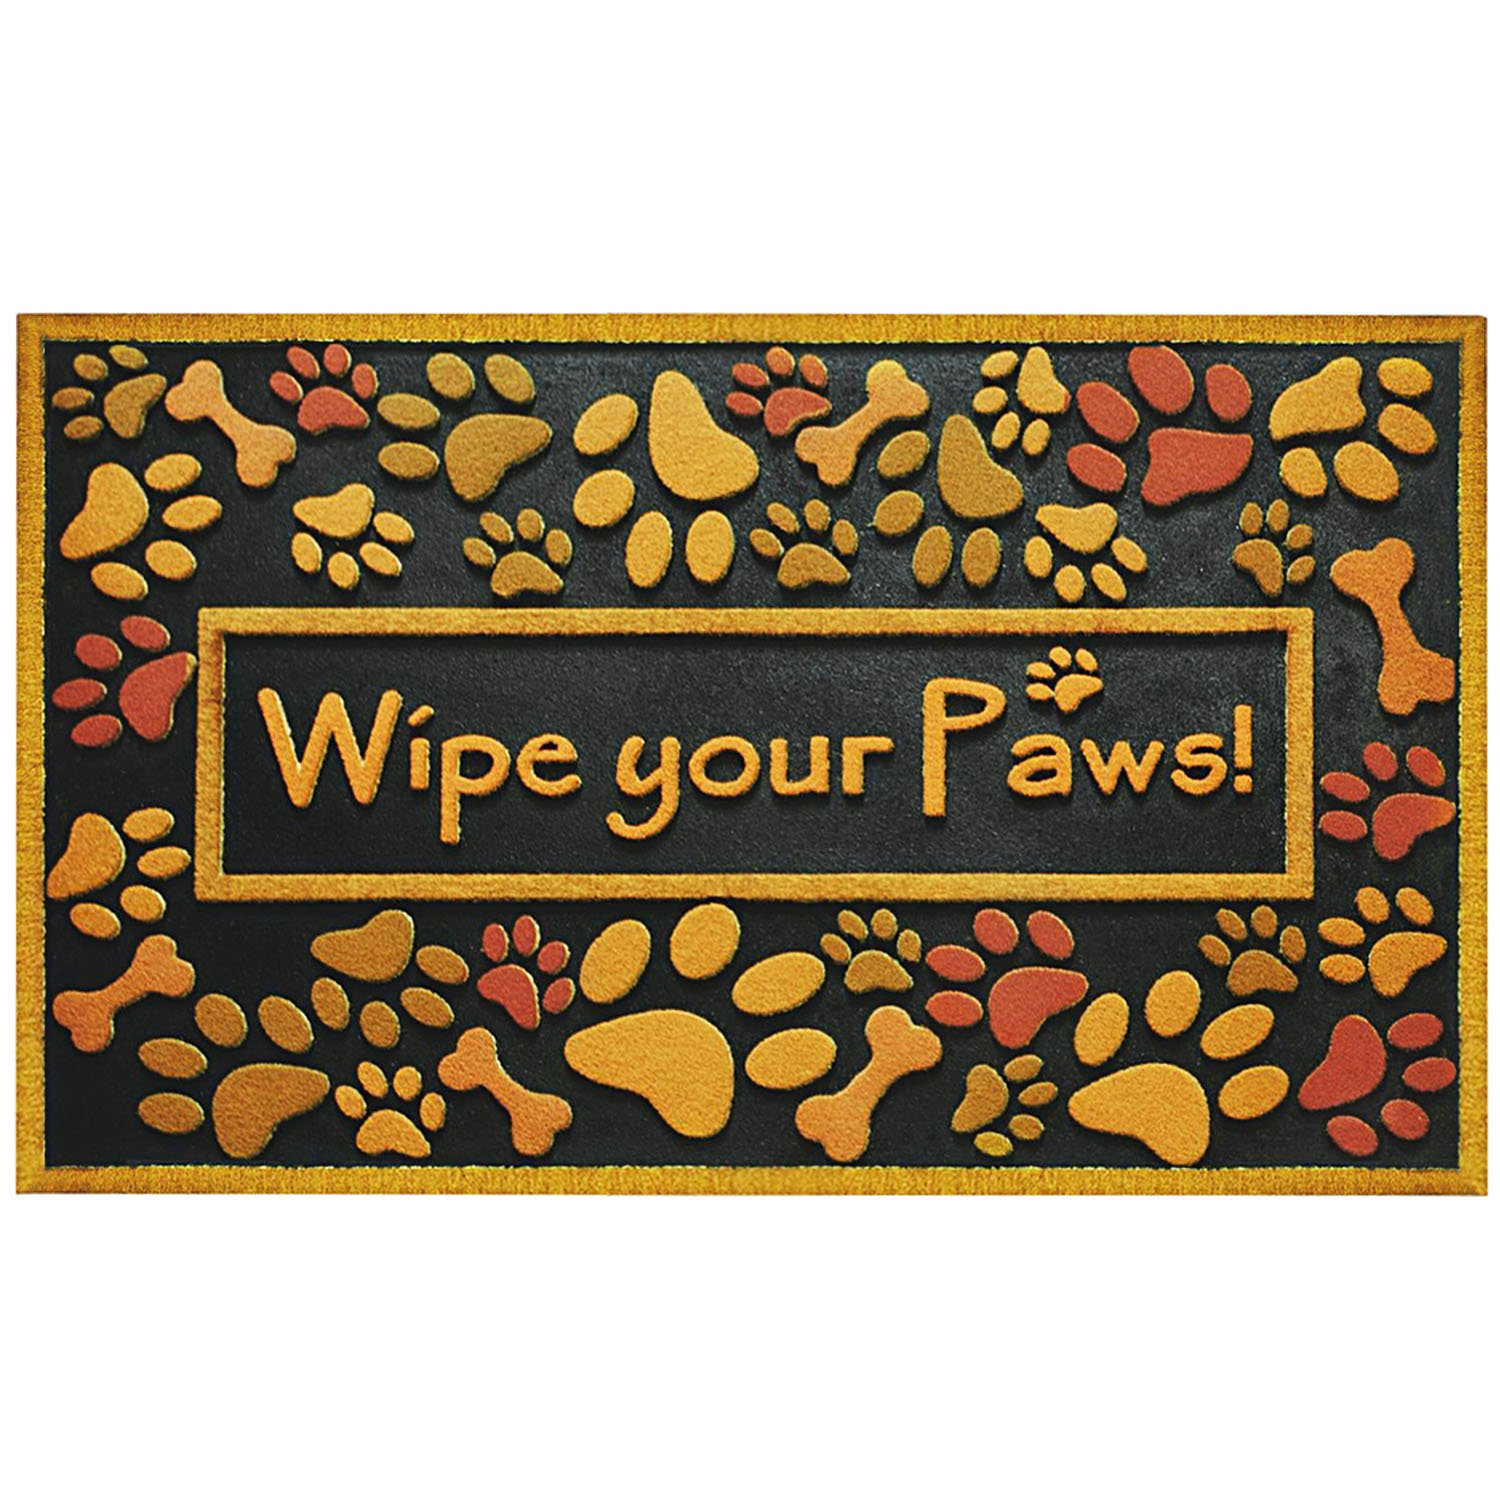 Door Mat Rug Wipe Paws Dog Puppy Paw Prints Entryway Home Decor Gift NEW